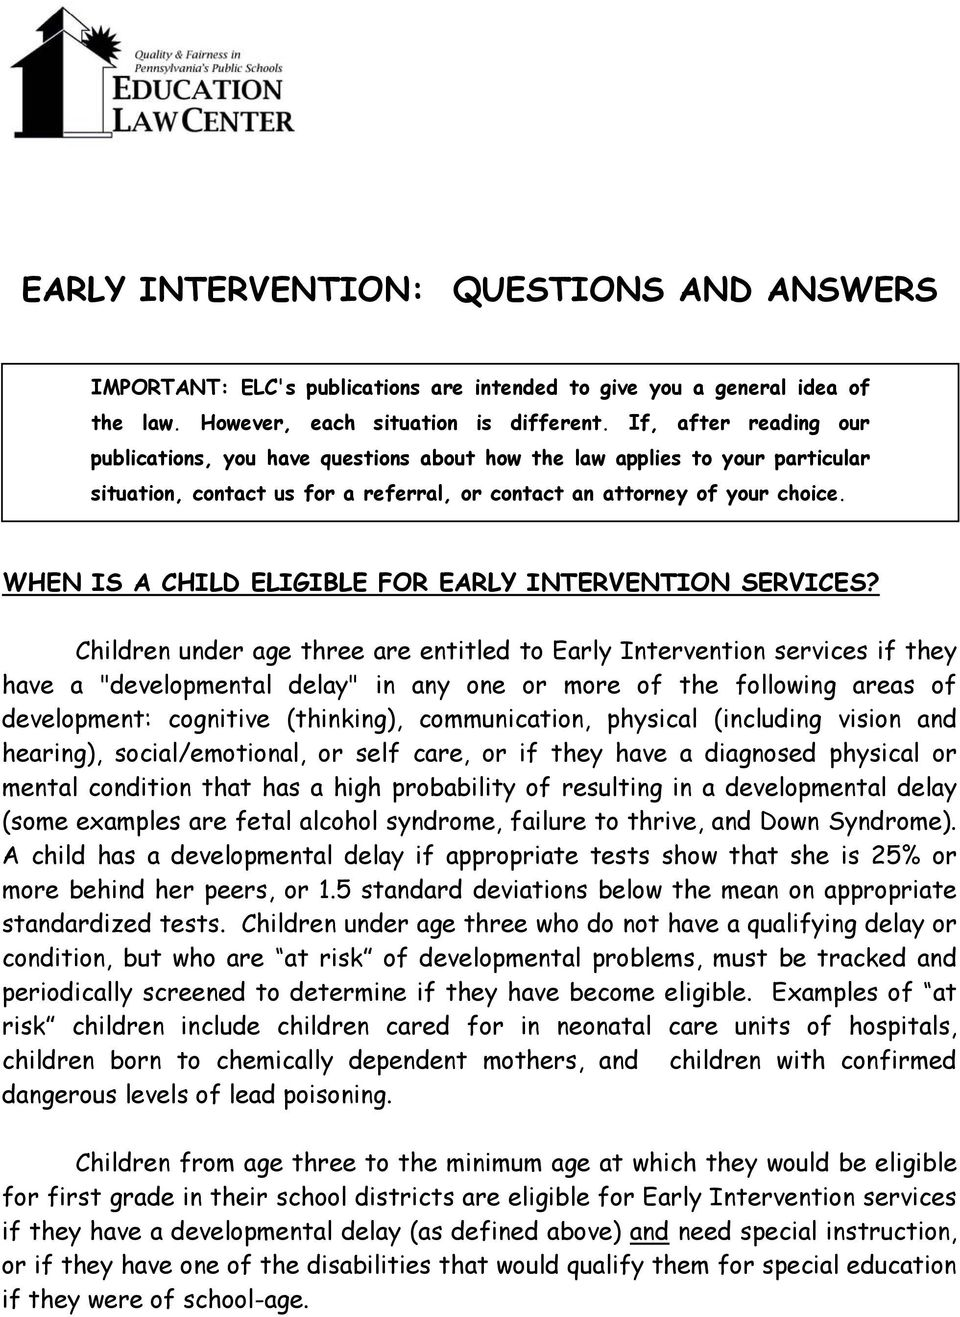 WHEN IS A CHILD ELIGIBLE FOR EARLY INTERVENTION SERVICES?